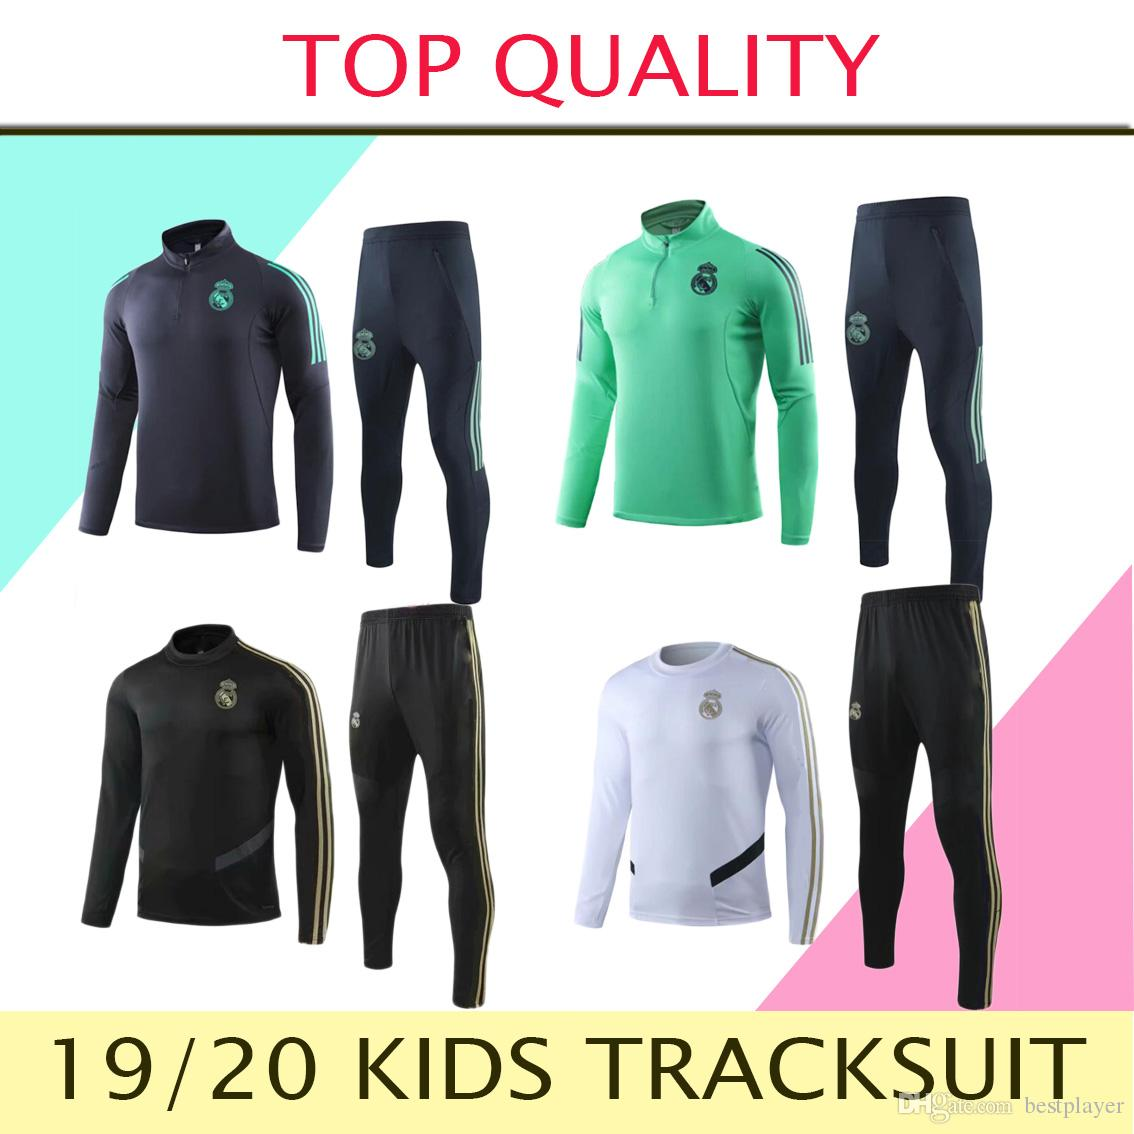 2019 2020 Real Madrid kids TRACKSUIT TRAINING SUIT veste de football chandal HAZARD ASENSIO ISCO youth BOYS survêtement REAL MADRID